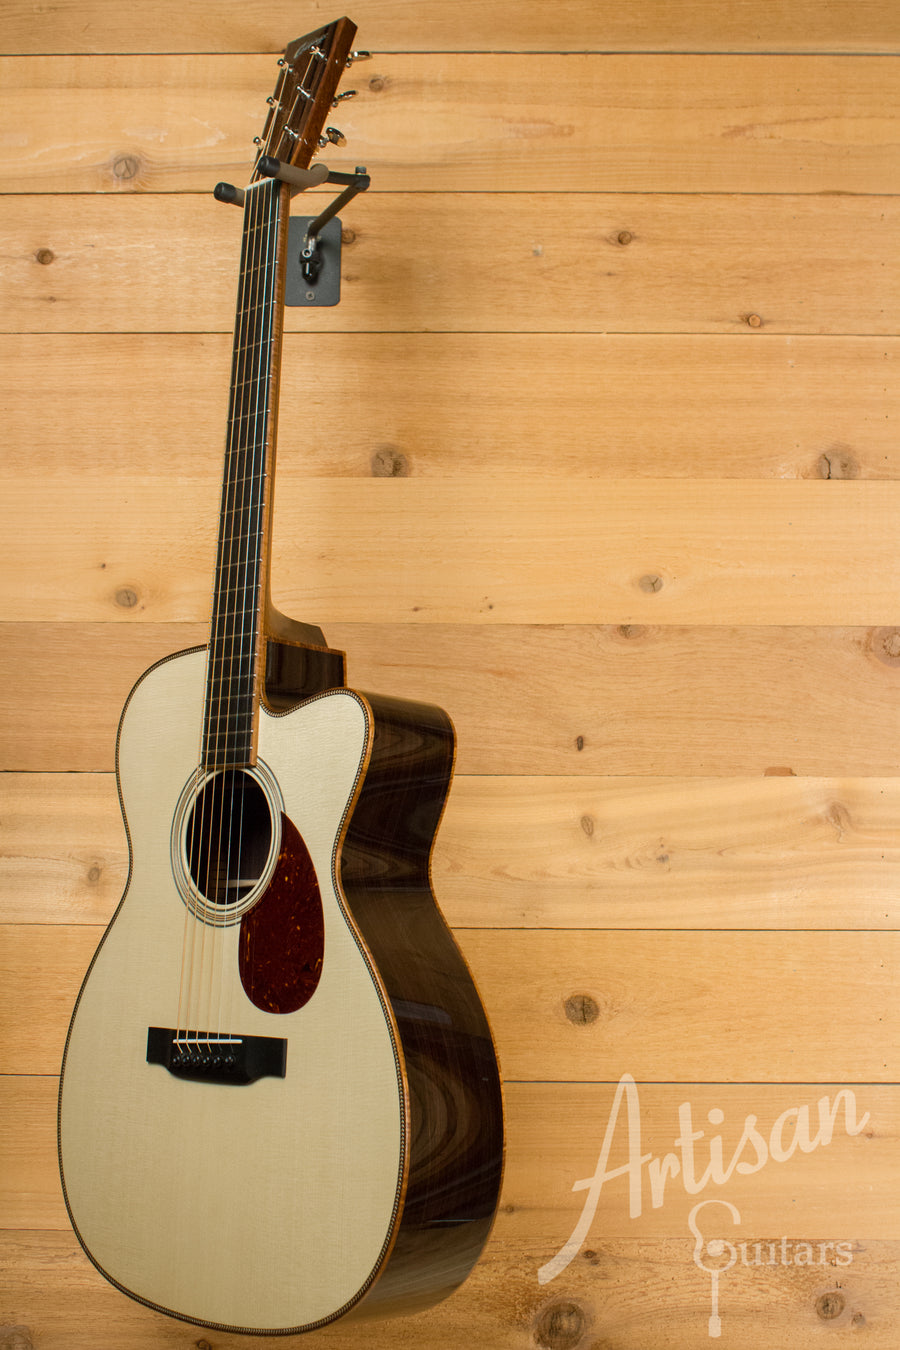 Collings OM2H E Guitar Cutaway Engelmann Spruce and Indian Rosewood with Koa Binding ID-10929